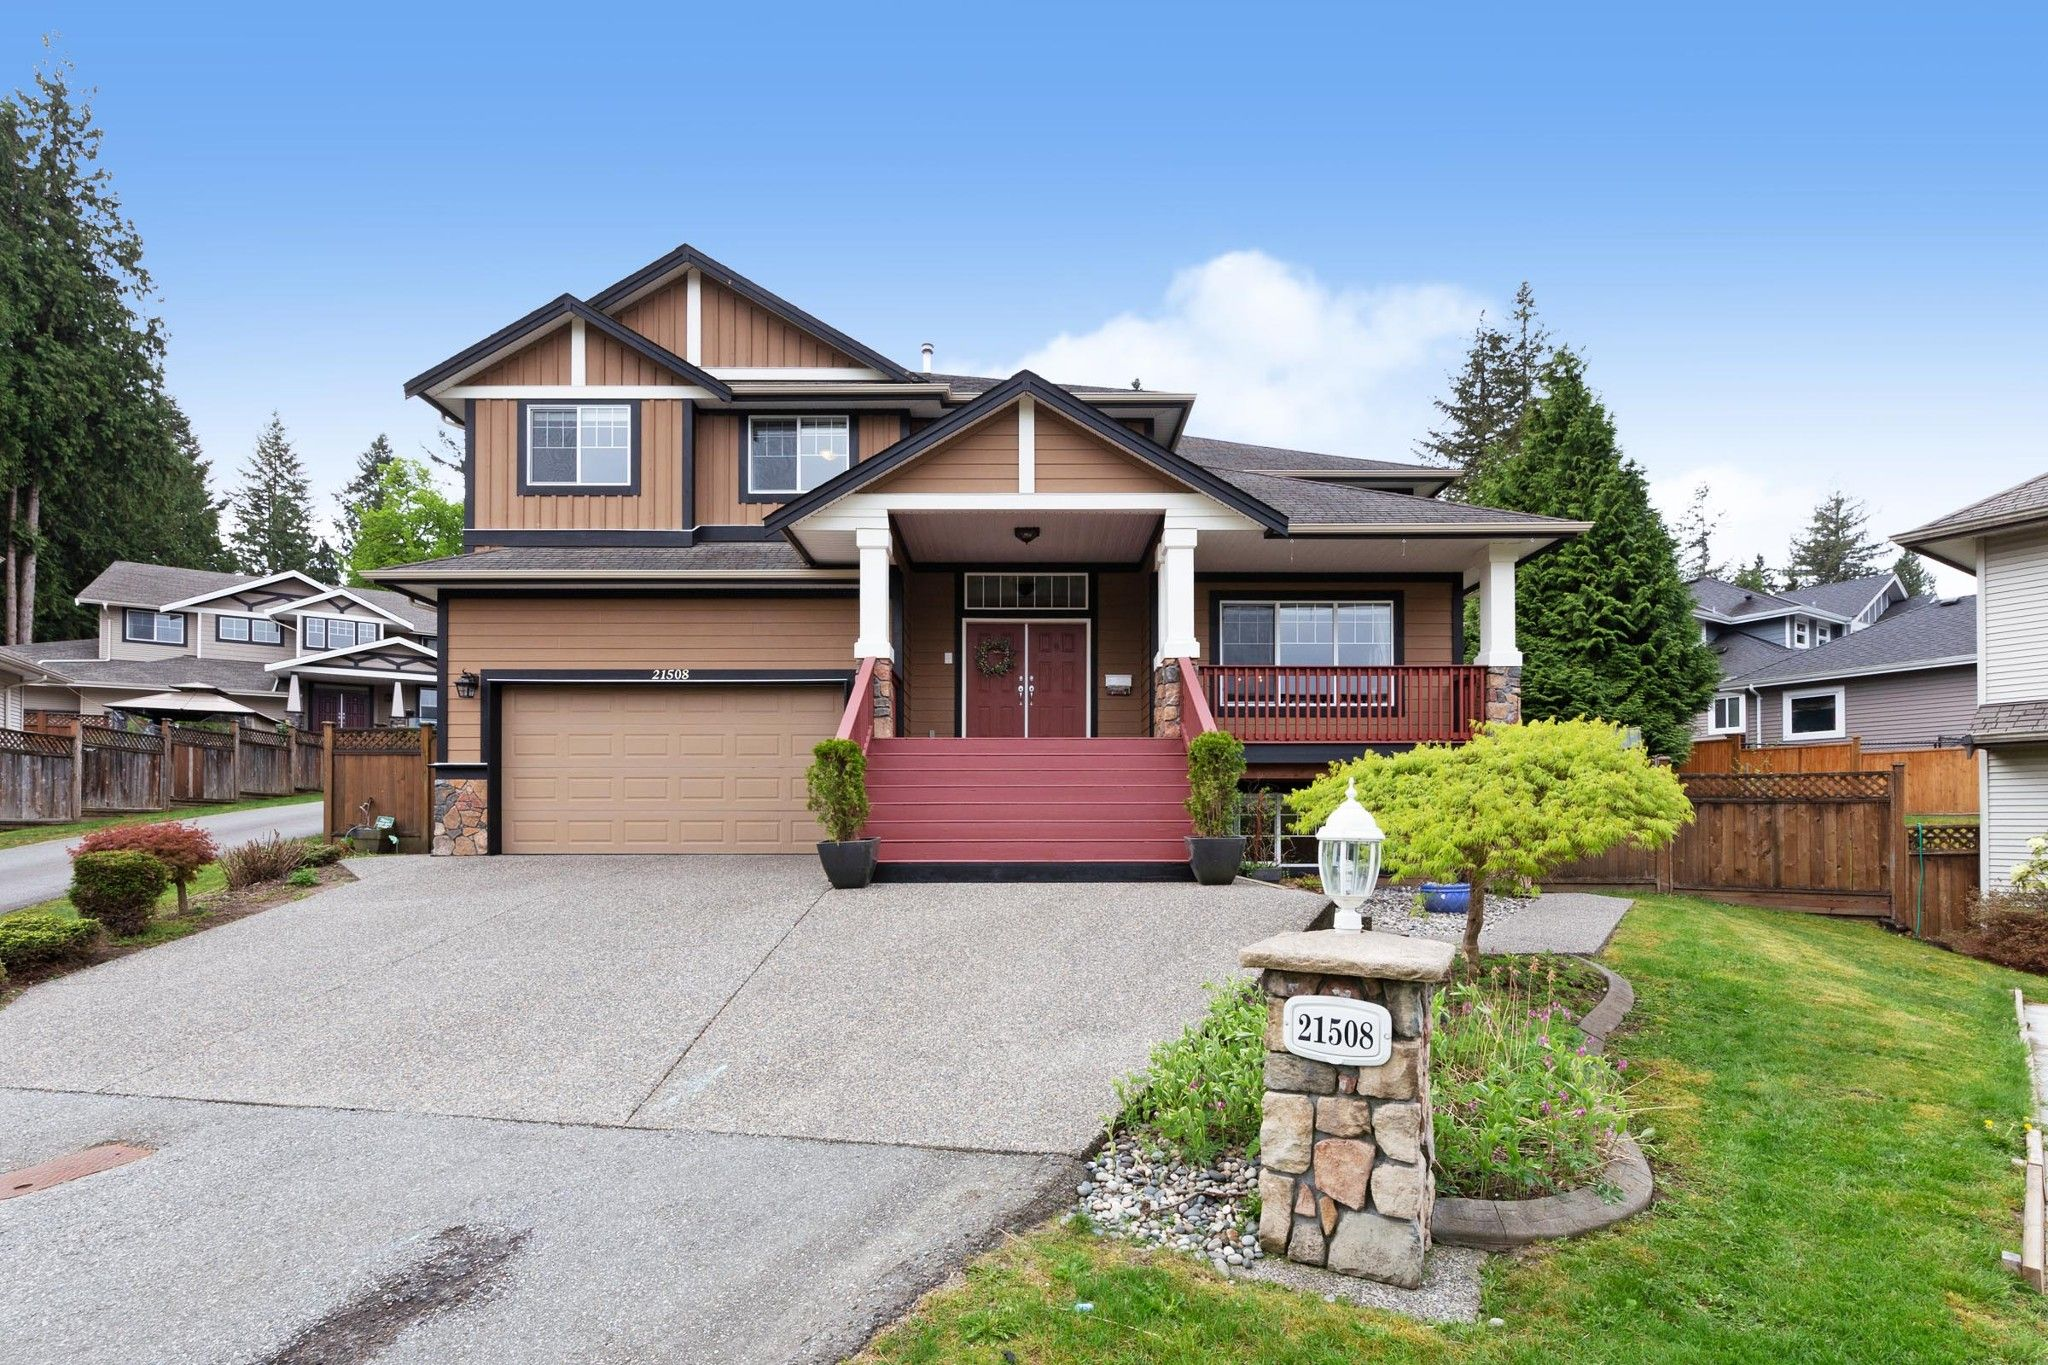 Main Photo: 21508 SPRING Avenue in Maple Ridge: West Central House for sale : MLS®# R2572329